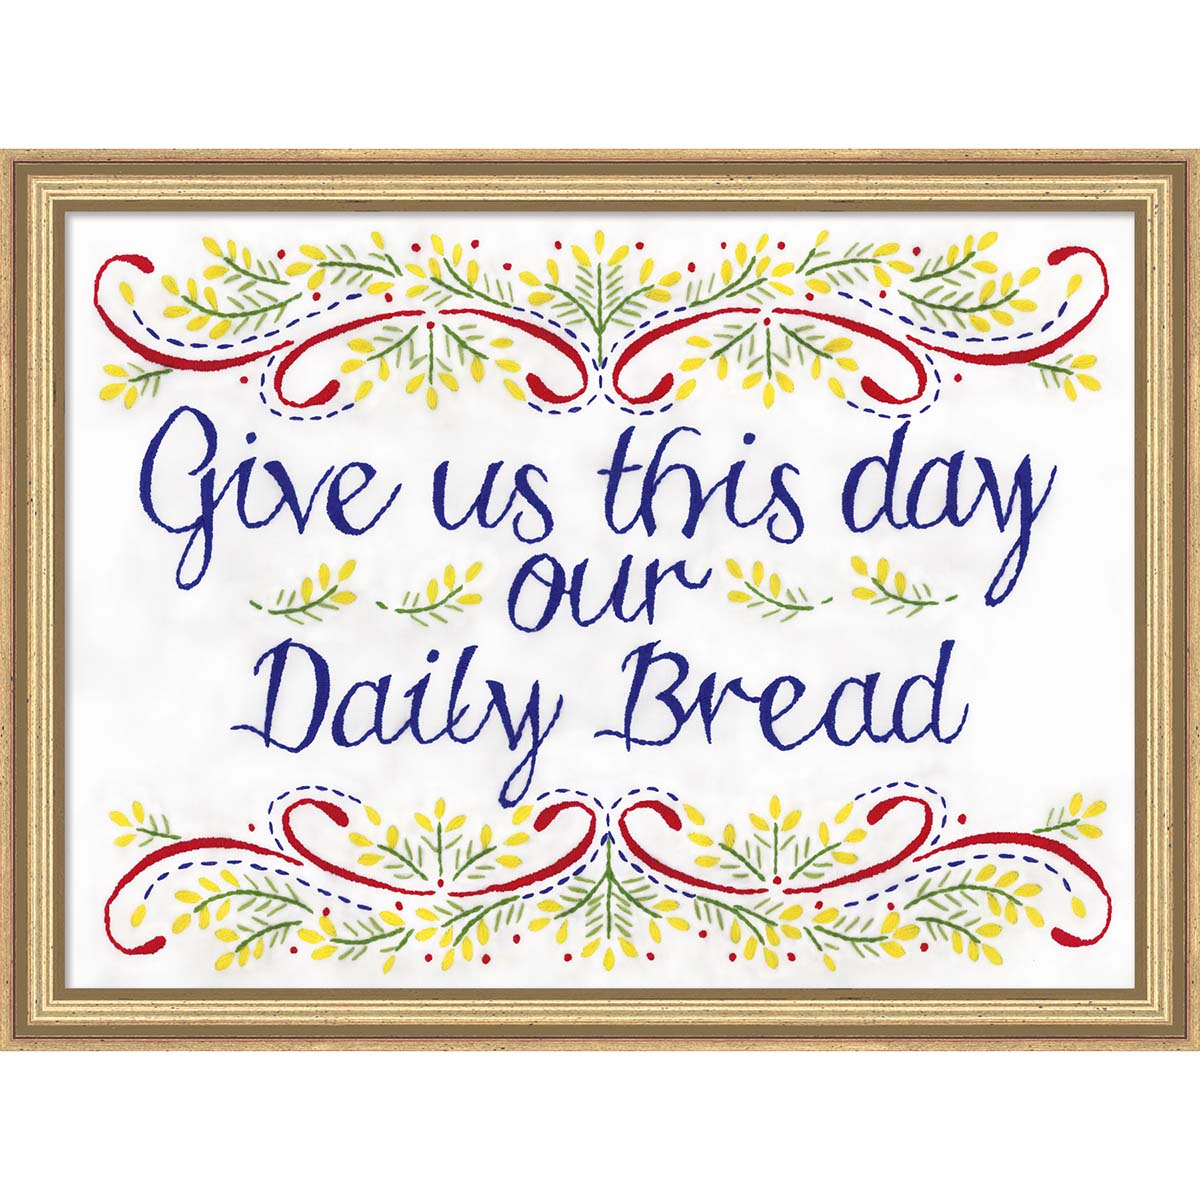 Herrschners® Our Daily Bread Picture Stamped Embroidery Kit